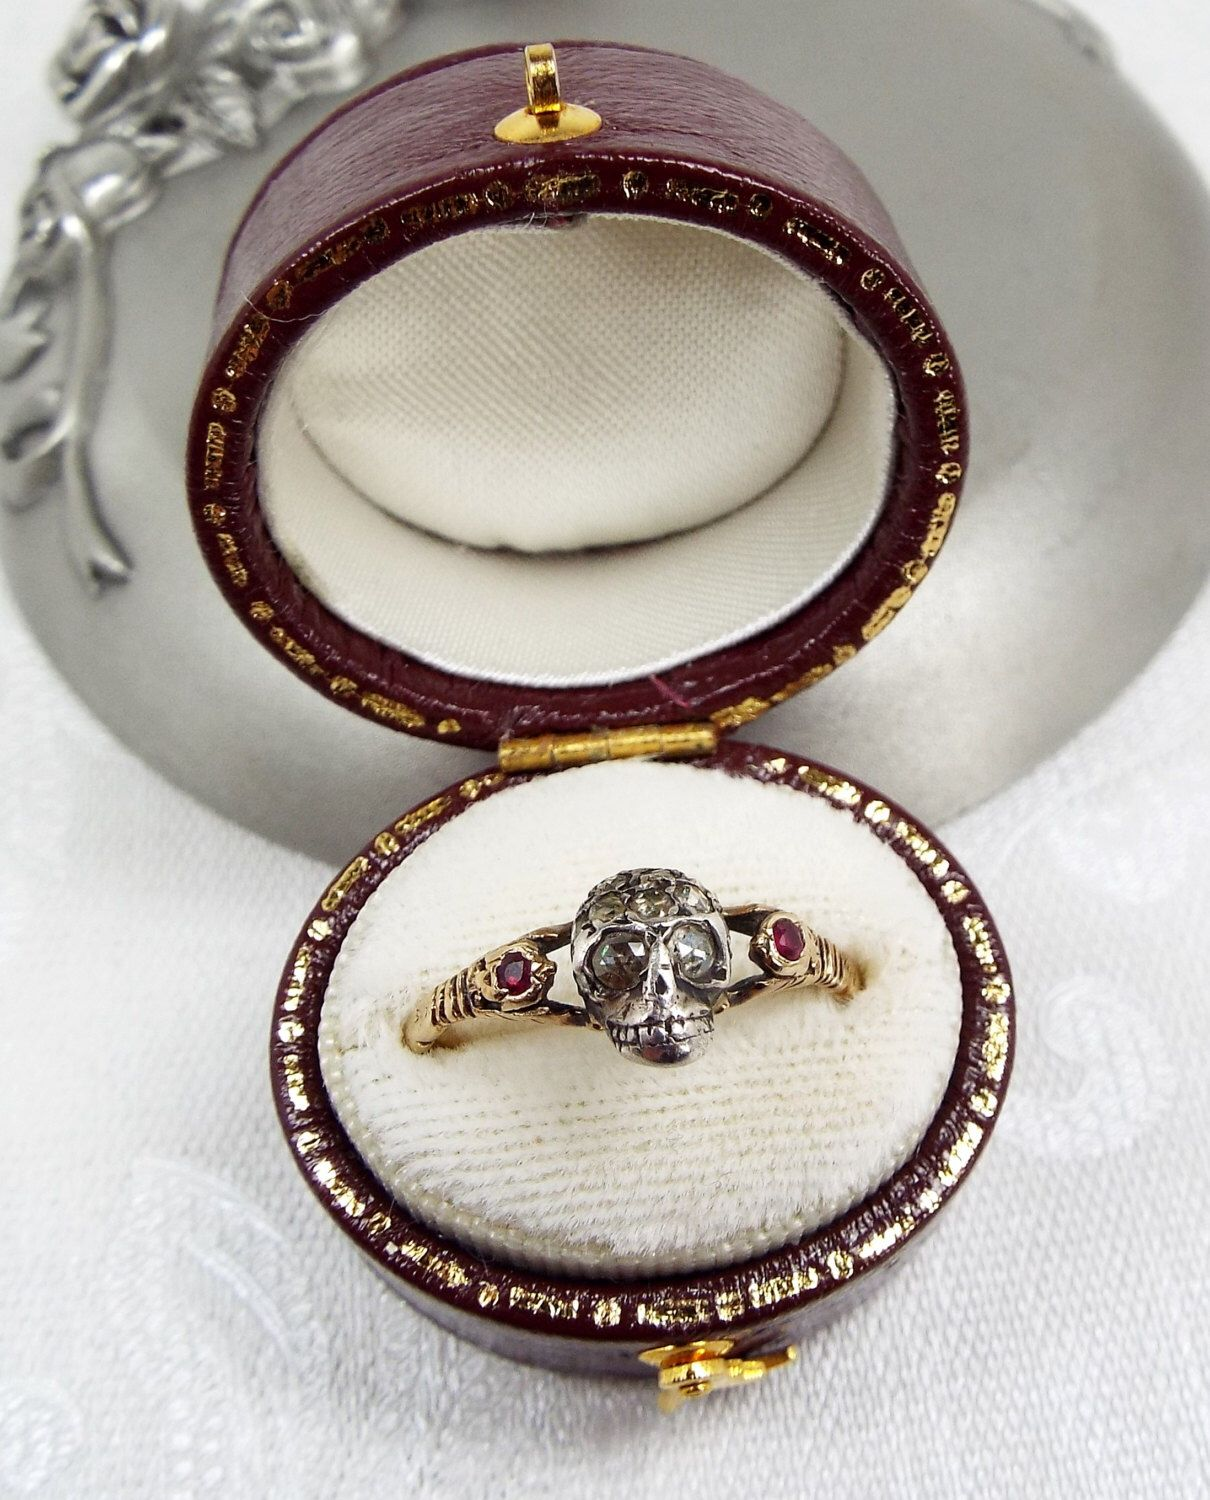 EXCEPTIONAL Antique Georgian 15ct Gold Rose Cut Diamond & Ruby Memonto Mori Skull Ring / Size N by DearRoseWithLove on Etsy https://www.etsy.com/listing/462526088/exceptional-antique-georgian-15ct-gold